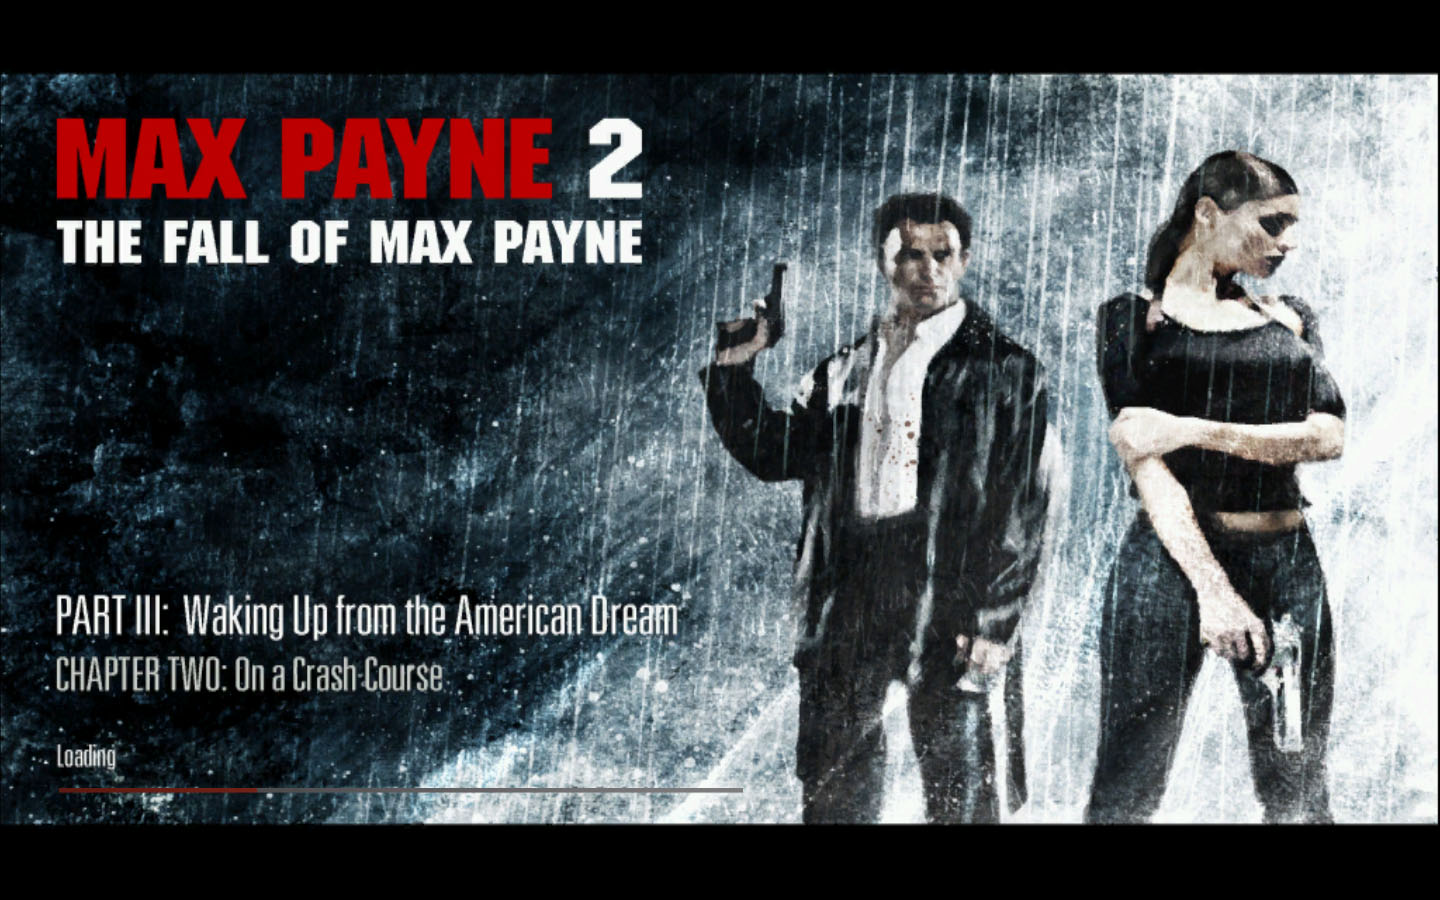 Most Viewed Max Payne 2 The Fall Of Max Payne Wallpapers 4k